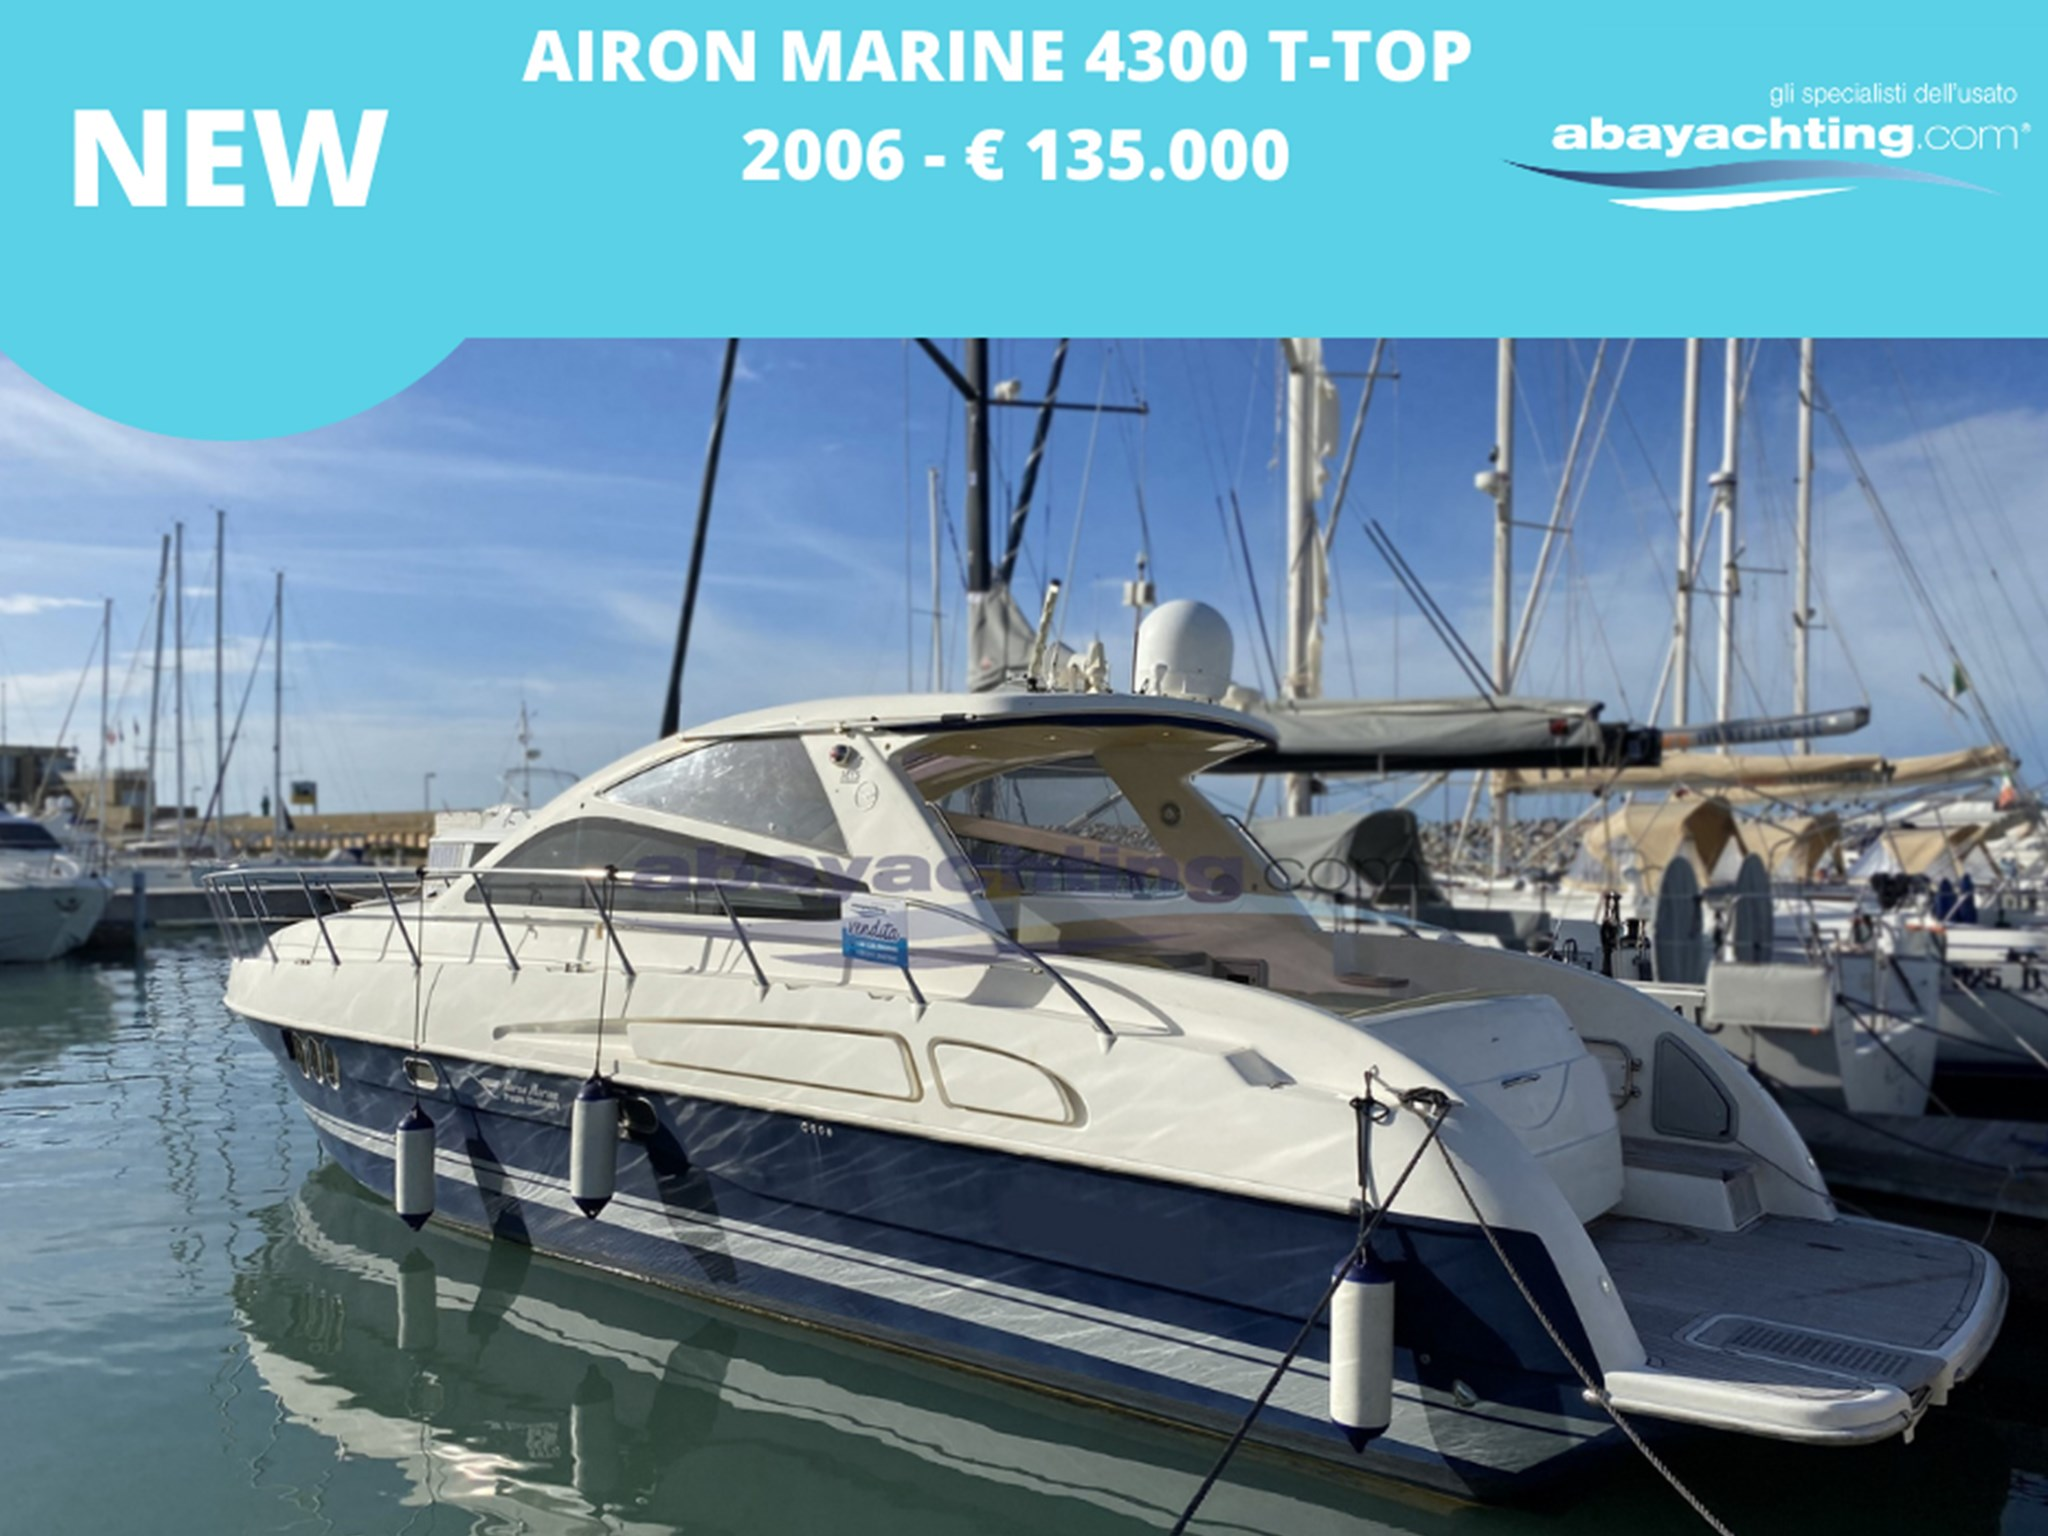 New arrival Airon marine 4300 T-Top